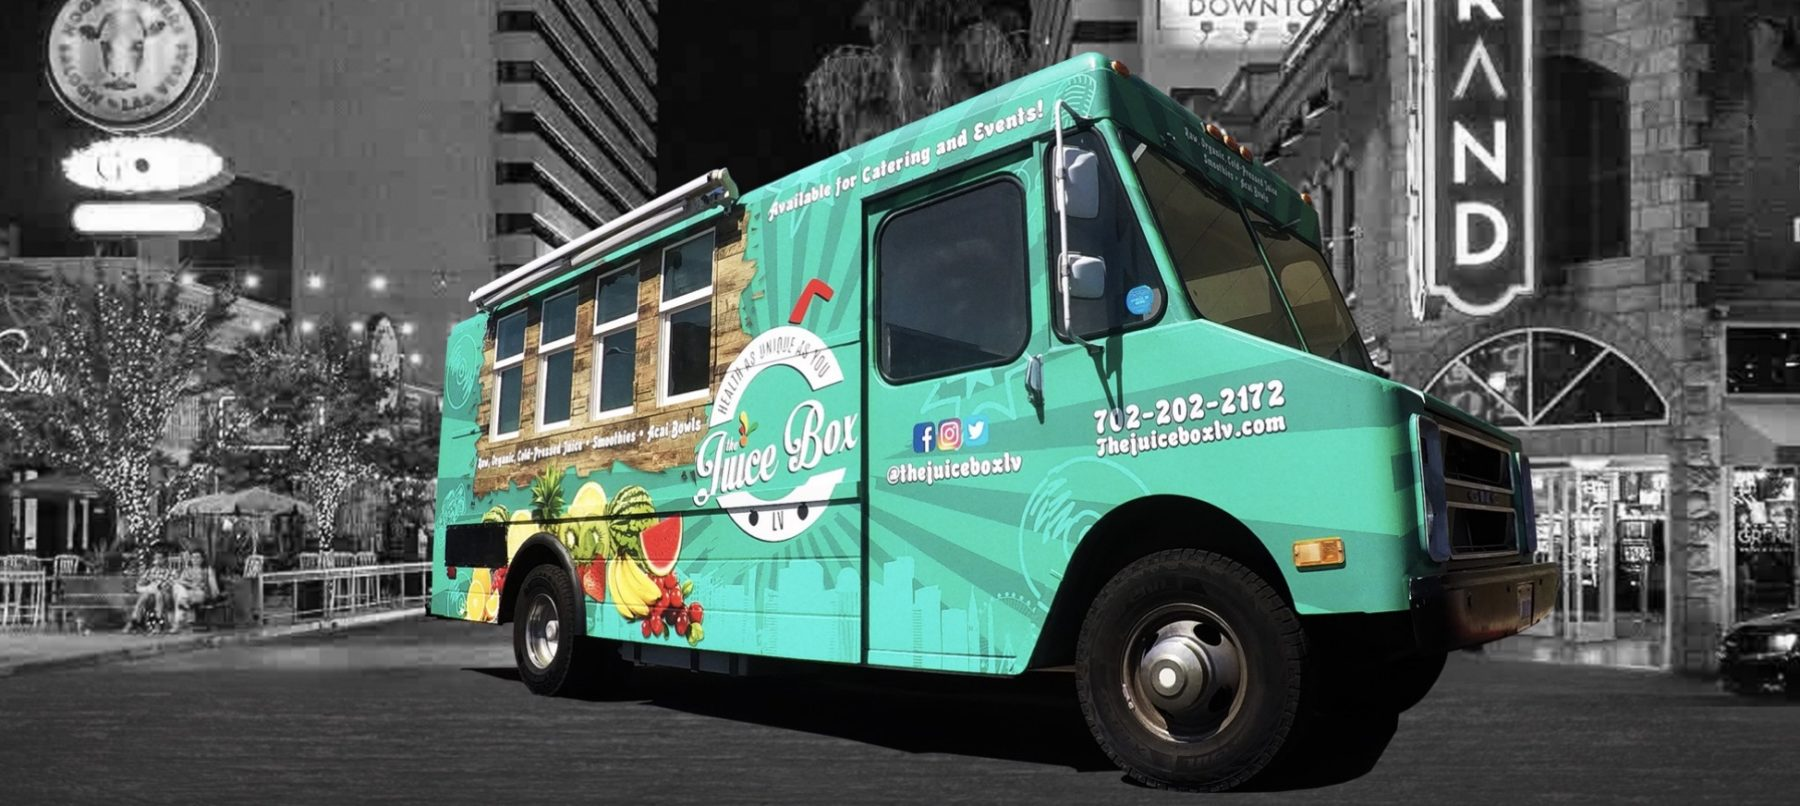 Las Vegas has its first vegan food truck, Juice Box LV serving organic raw, cold-pressed juices, smoothies and bowls. For more vegan options in Las Vegas, visit www.vegansbaby.com